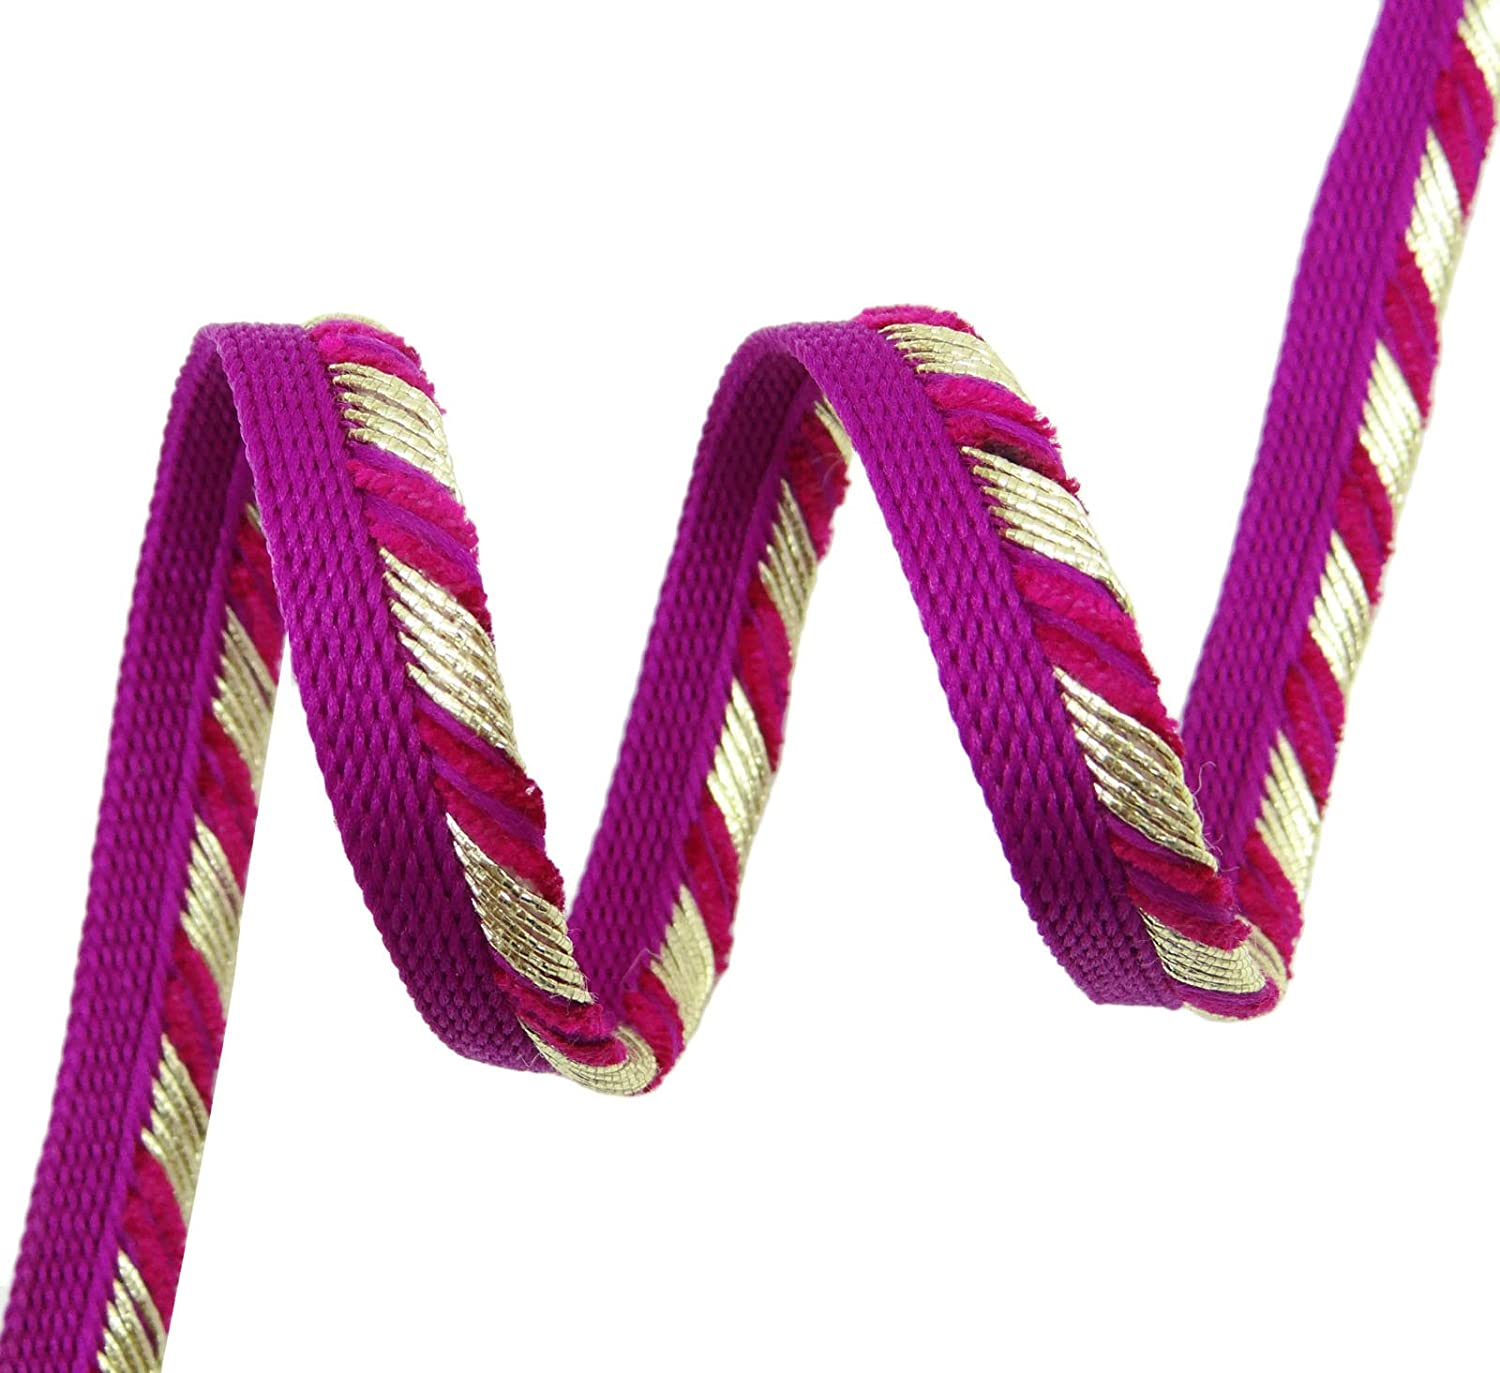 Amazon Com 7 6 Mm Crafting Braided Trim Upholstery Lip Cord Piping